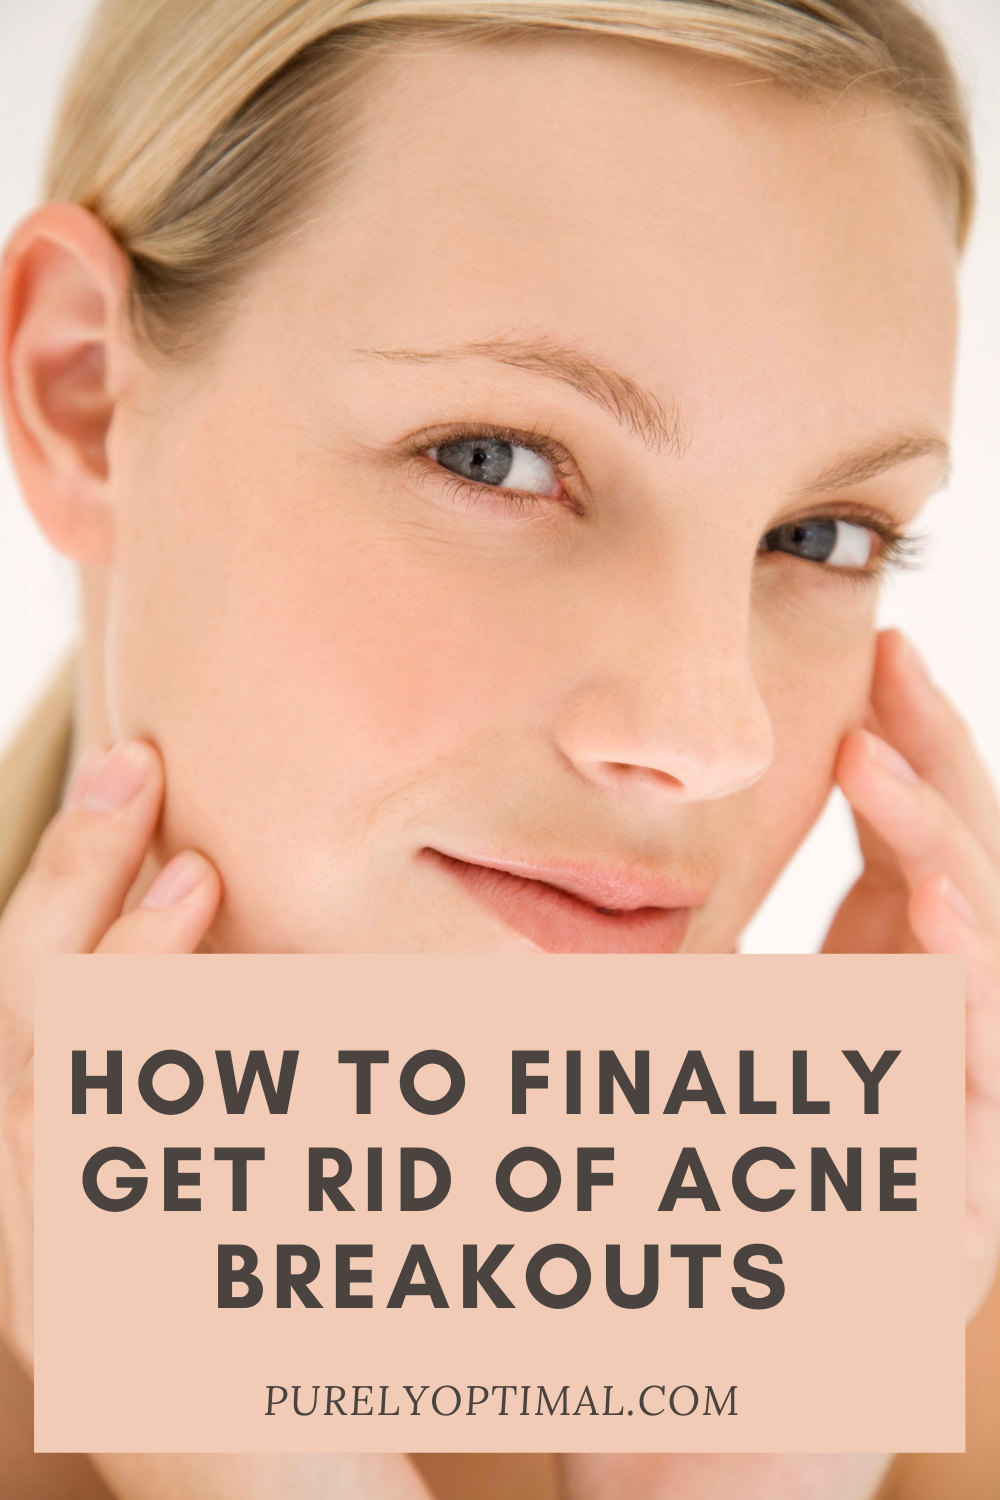 Don't lose hope when your acne breaks out due to hormonal imbalance. Inside this blog are some helpful tips and a takeaway on how to treat this imbalance naturally. #hormonalacnetreatment #acnetreatment #acneskincareroutine #hormonalimbalance #acnebreakout #acne #breakout #hormonalacne #hormoneimbalance